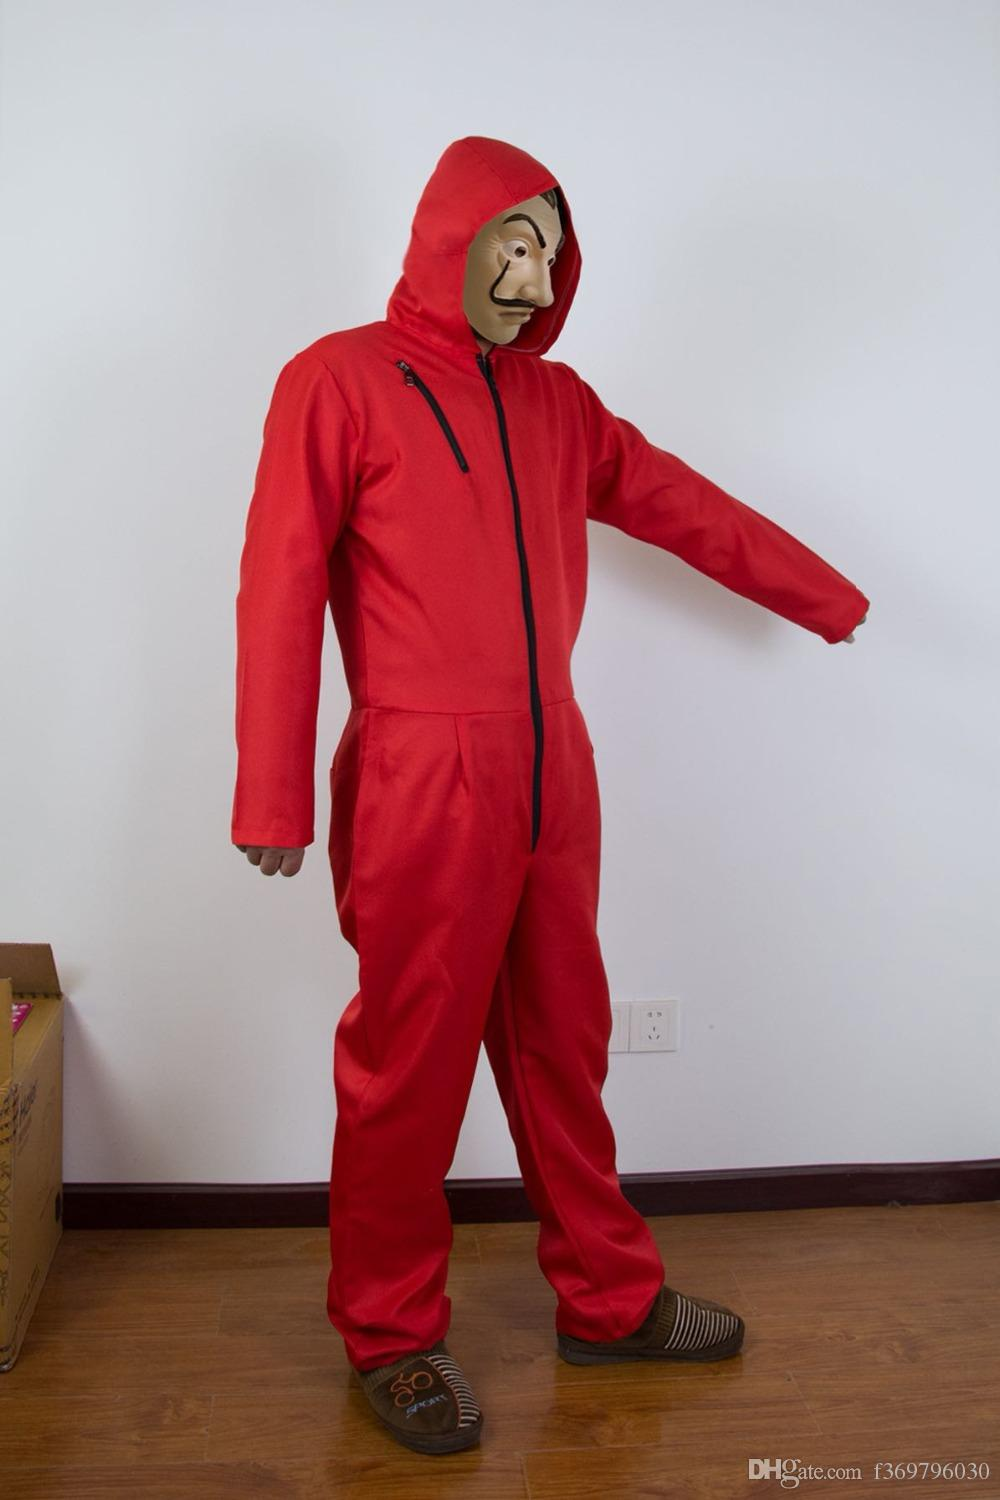 money Heist hot movie Salvador delivery Dali mask The Paper House Salvador Dali cosplay costume red monkeys Child adult uniform